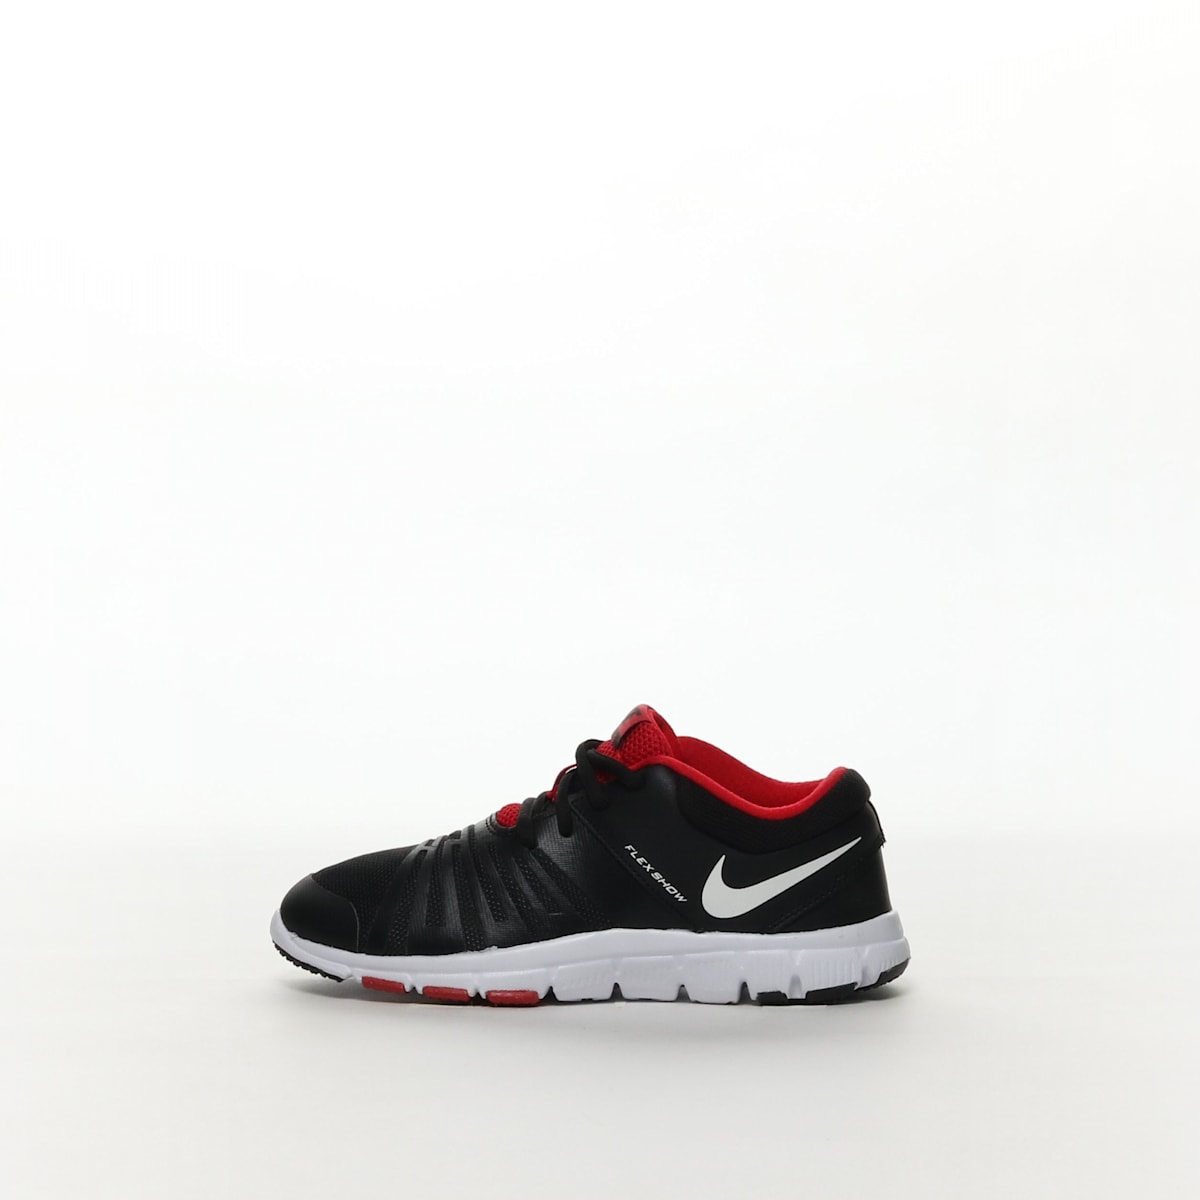 7e827e9db615b Boys  Nike Flex Show TR 5 (GS PS) Training Shoe - BLACK WHITE – Resku